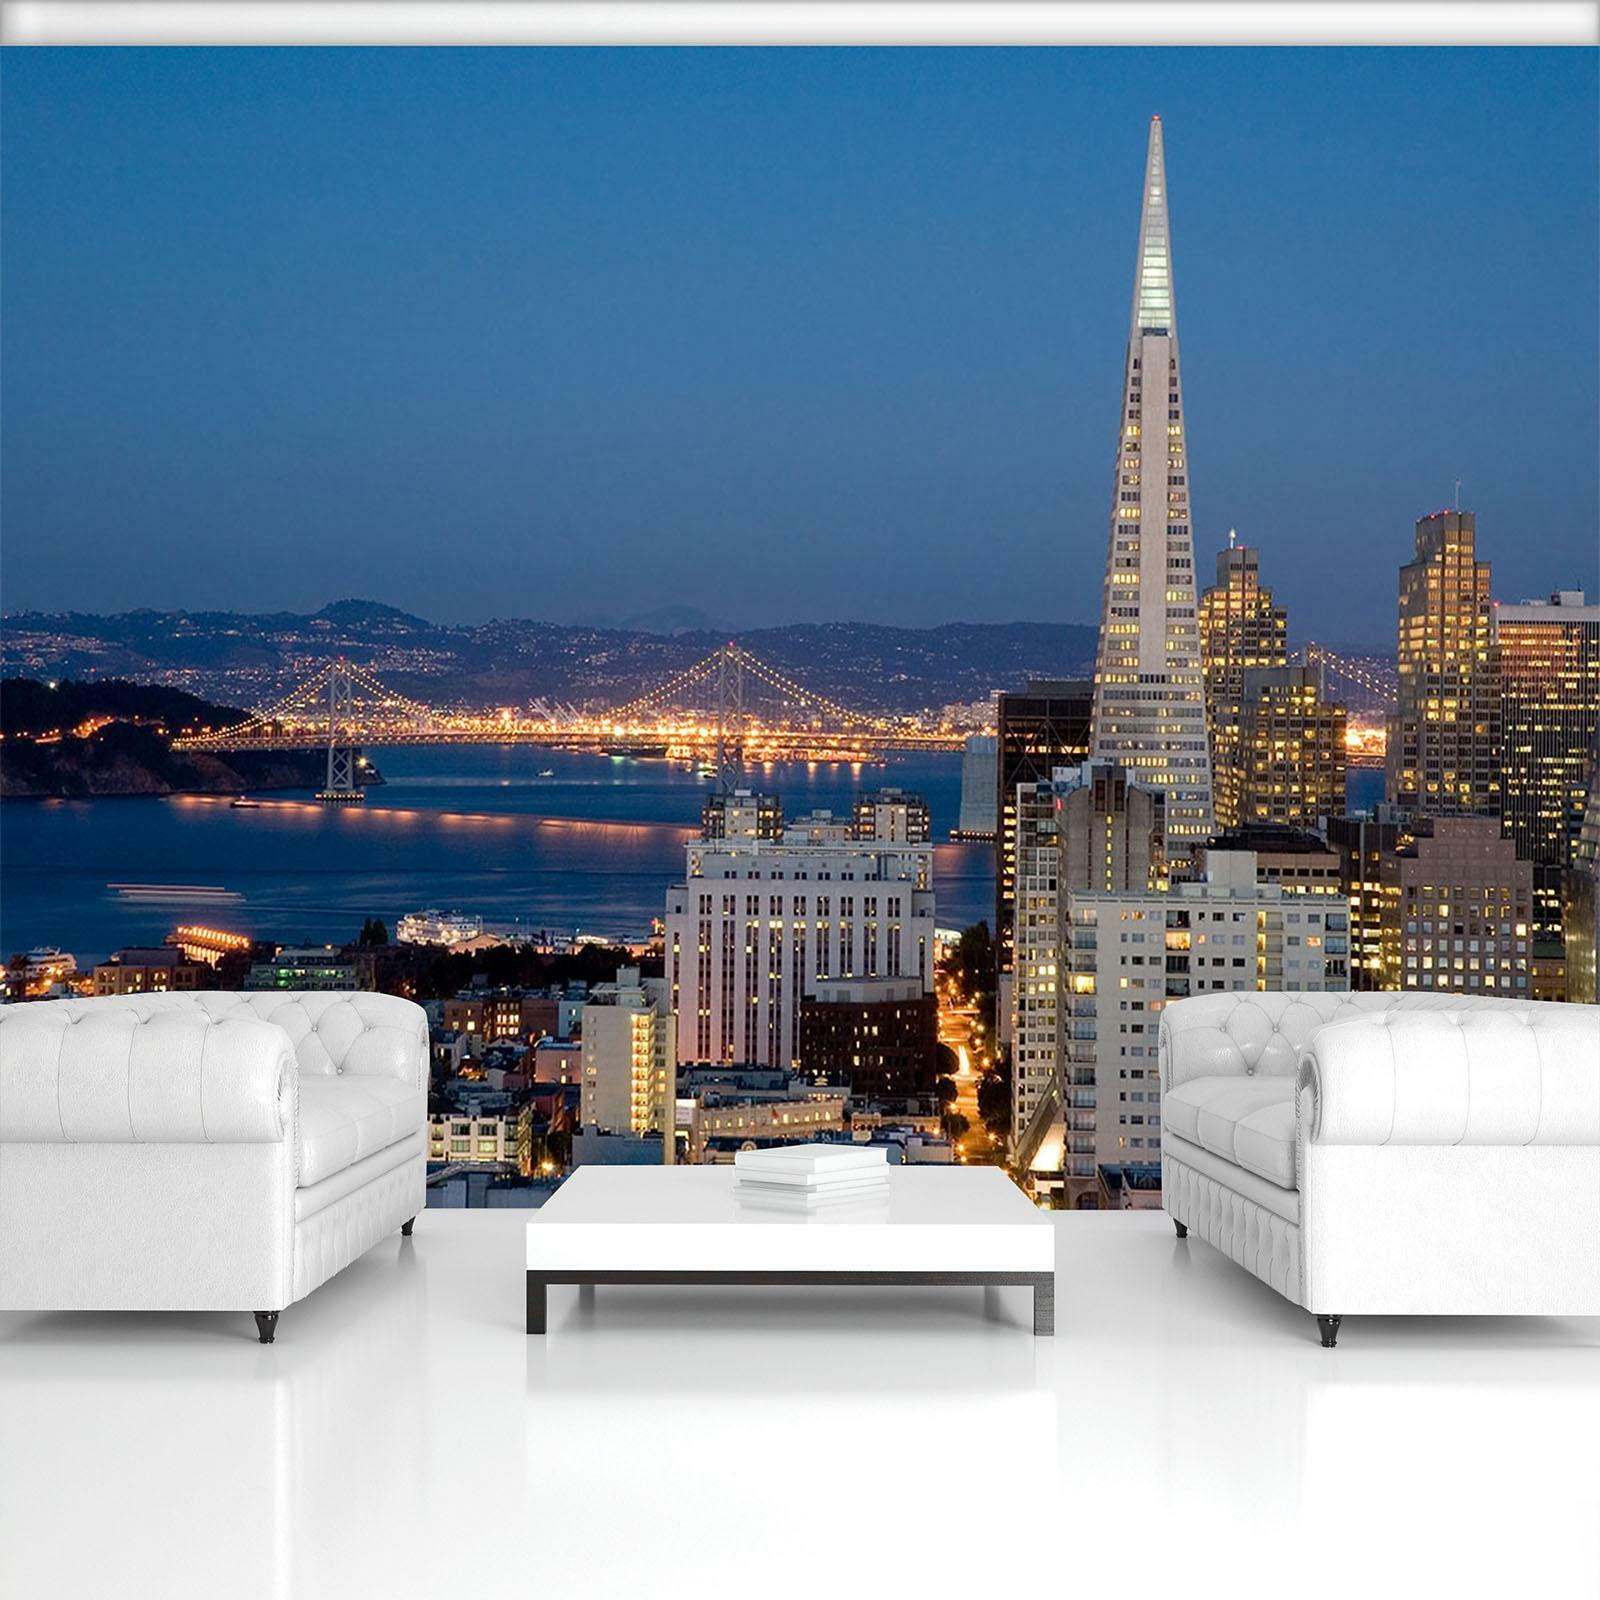 Photo Wallpaper Mural Non-woven 11574_VEN San Francisco  City View Panorama Nigh